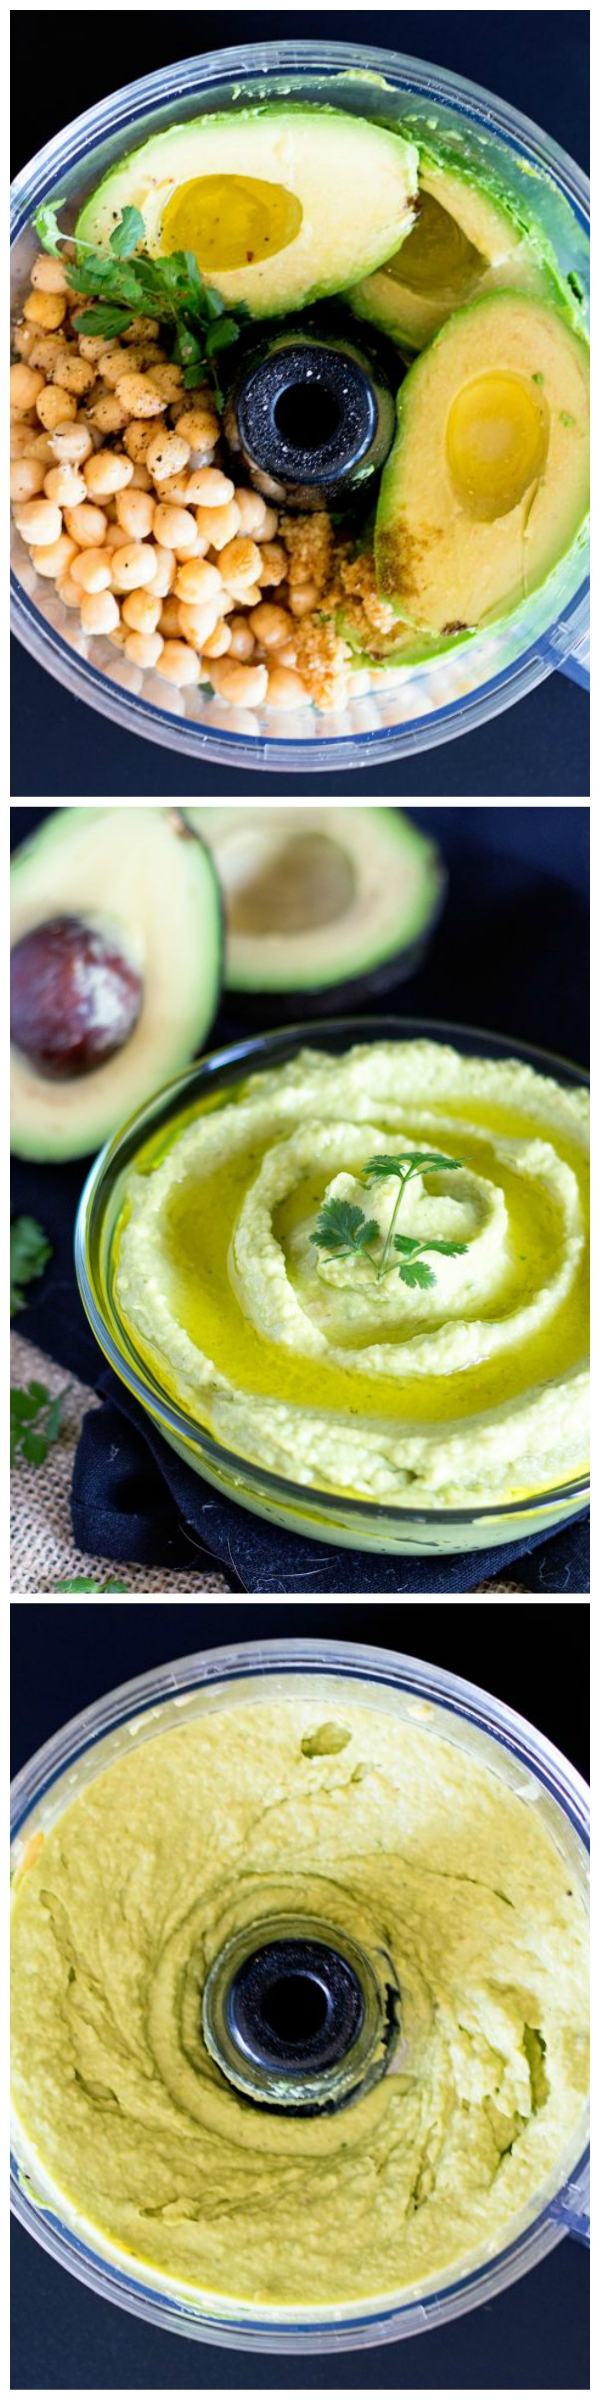 Rich and creamy hummus made with avocado and chickpeas.